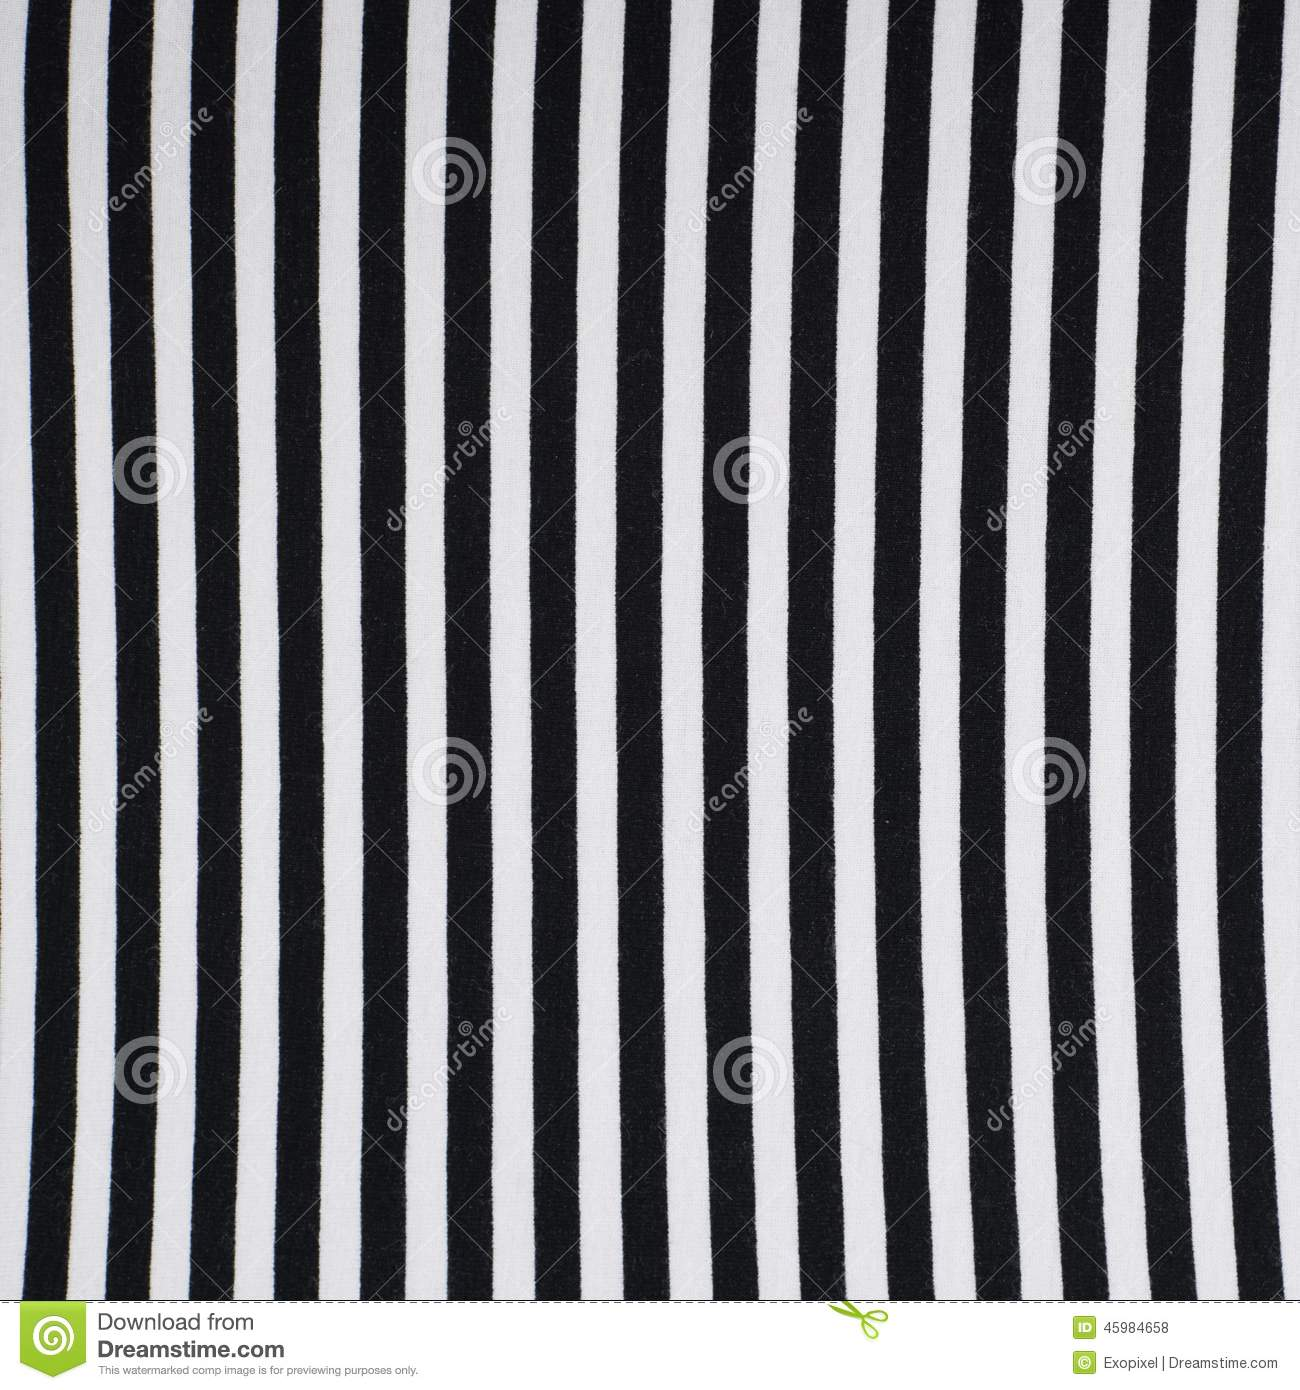 Fragment Of A Striped Fabric Stock Photo Image Of Geometric Grey